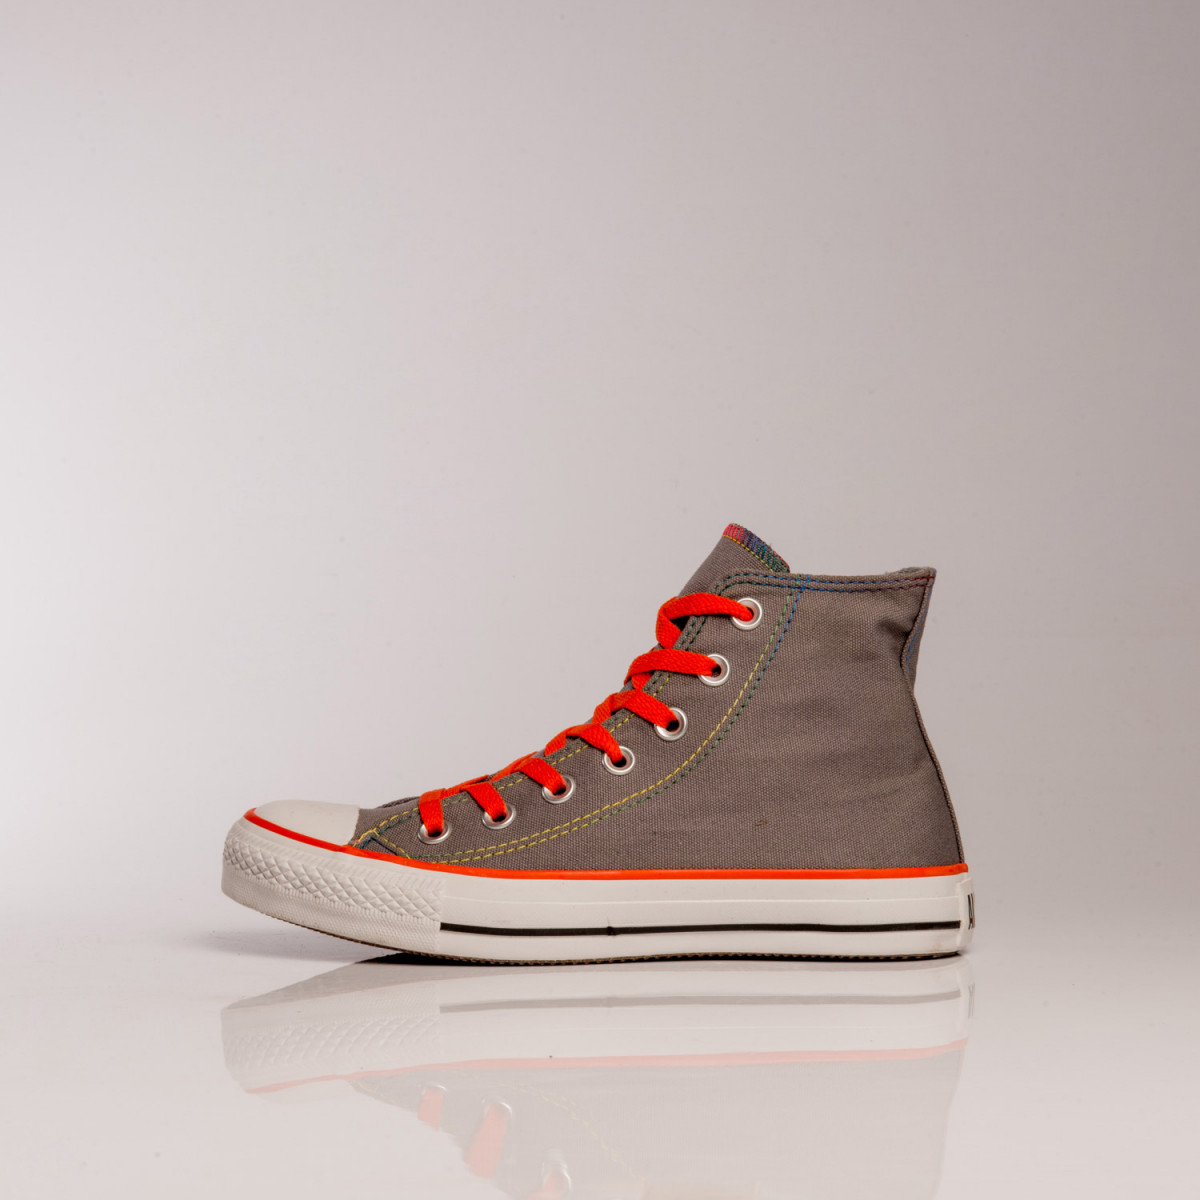 ZAPATILLAS CHUCK TAYLOR ALL STAR SPECIALTY HI